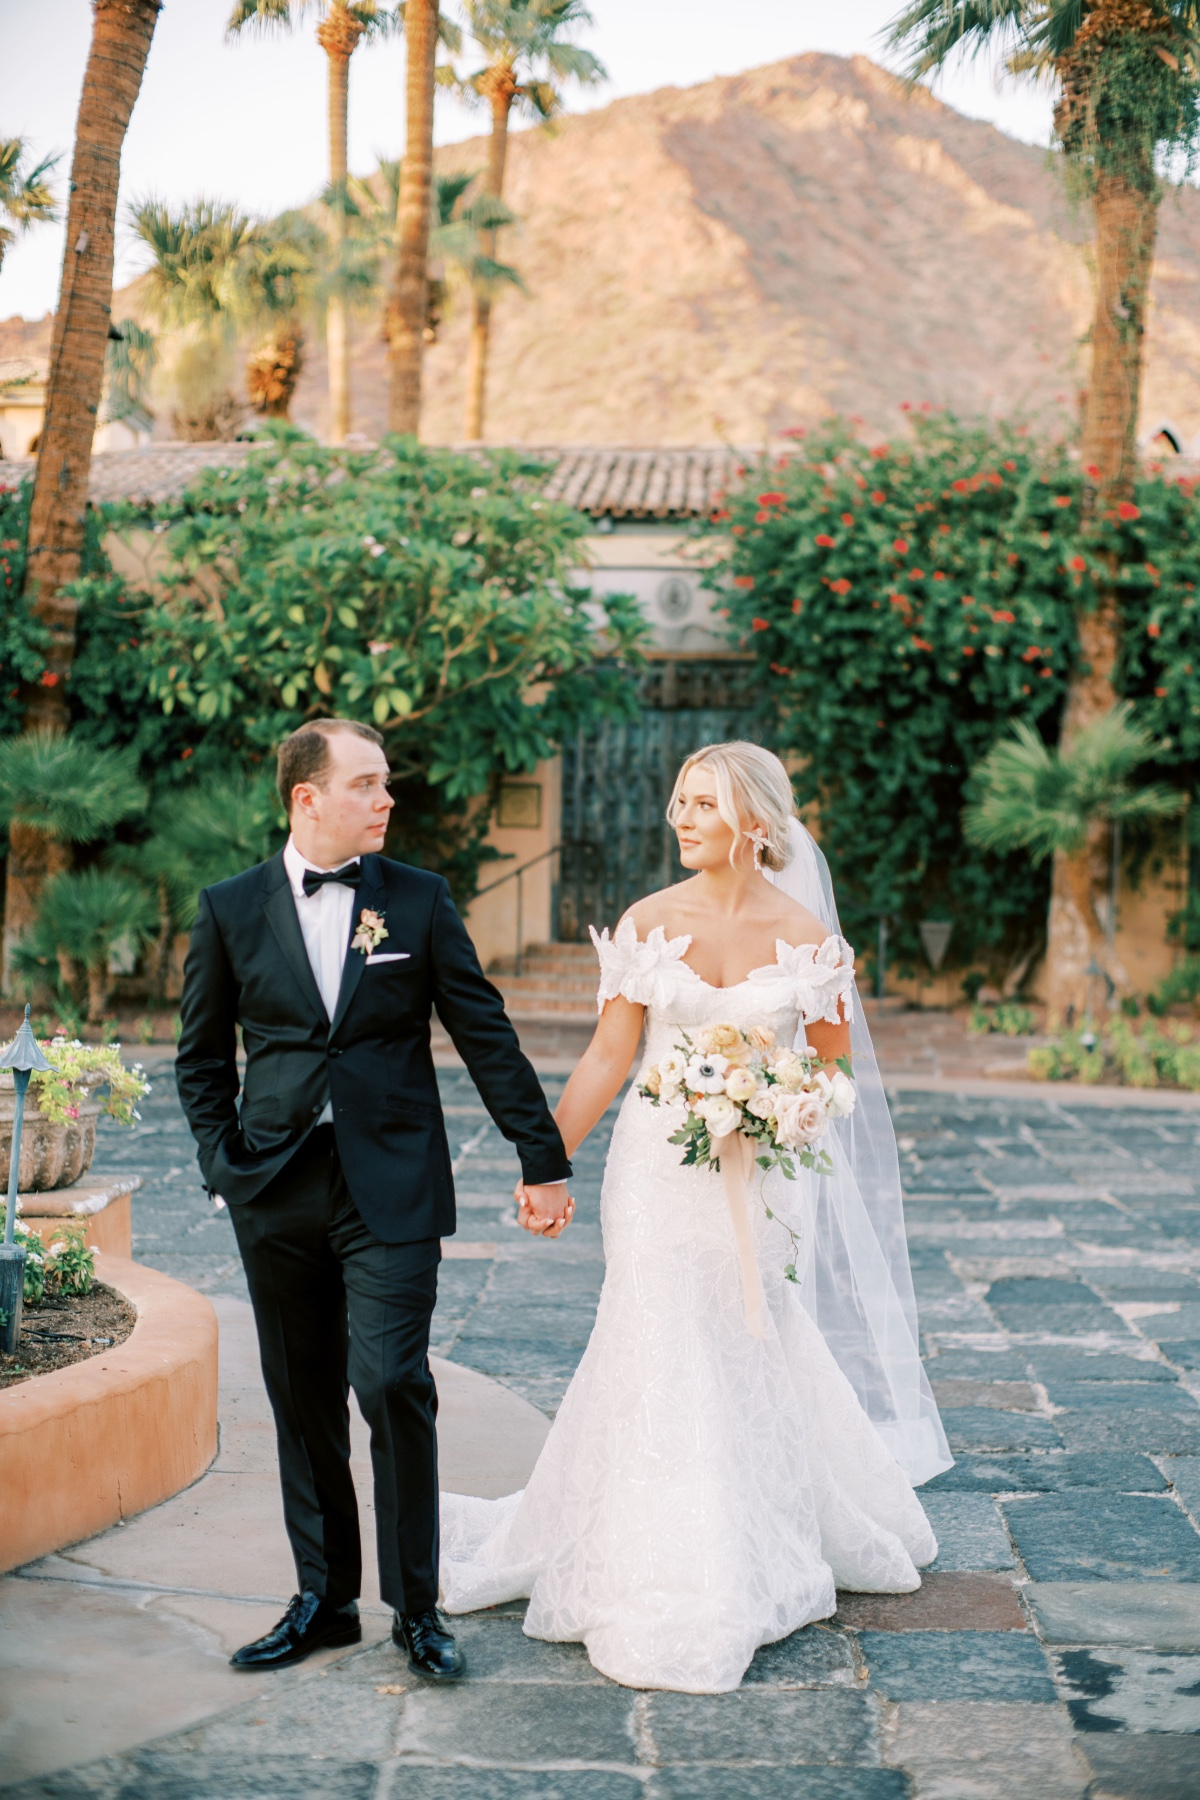 A Microwedding in Phoenix with a 30k Budget